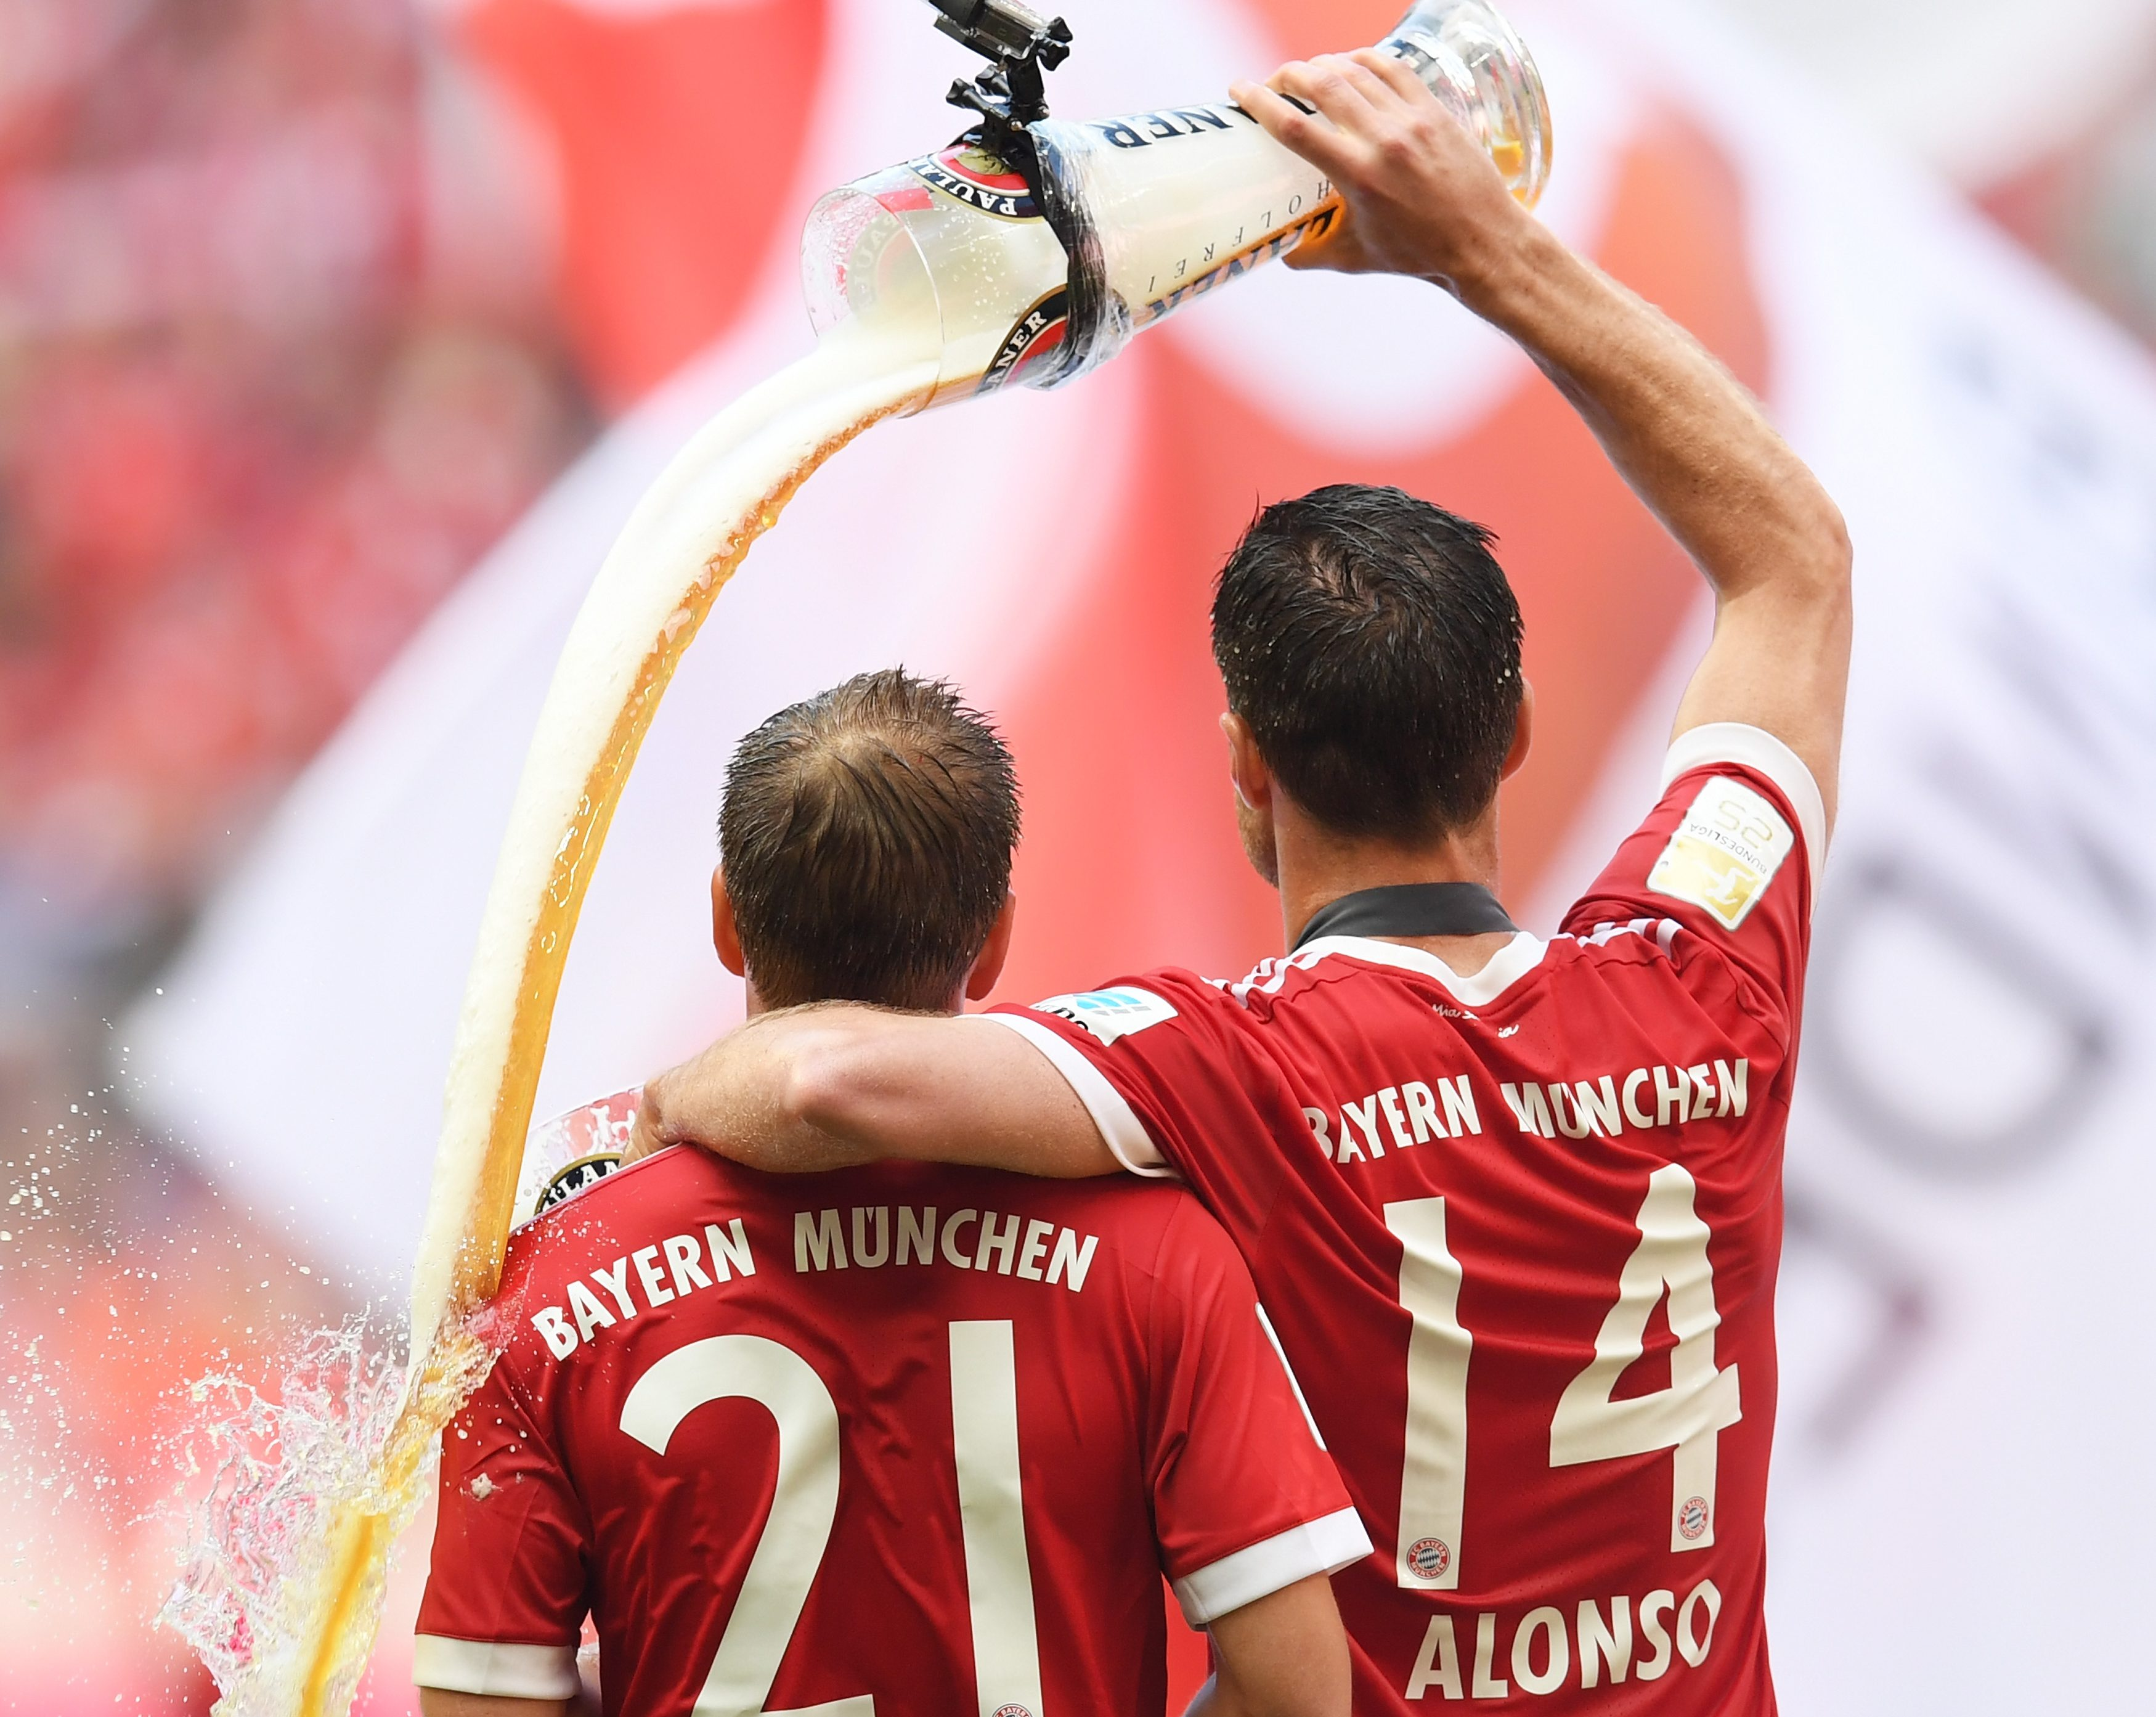 Xabi Alonso and Philipp Lahm get heroes' send-off in final games for Bayern Munich